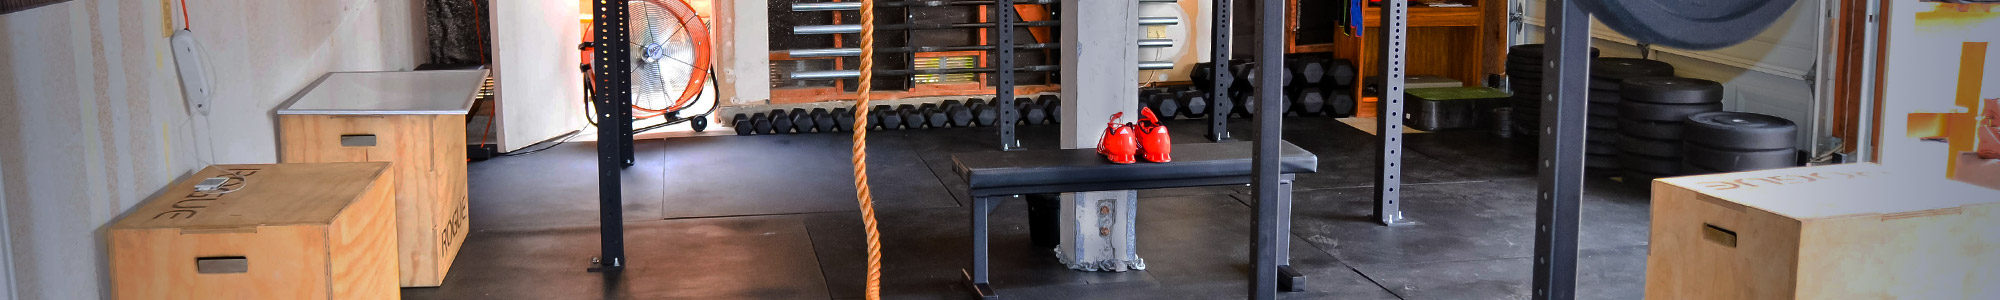 Rogue equipped garage gyms photo gallery fitness